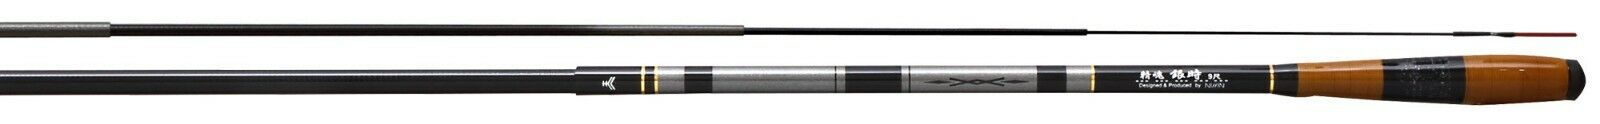 NISSIN SEIKON GINTOKI Telescopic Japanese Stream closed 39cm Rod variations